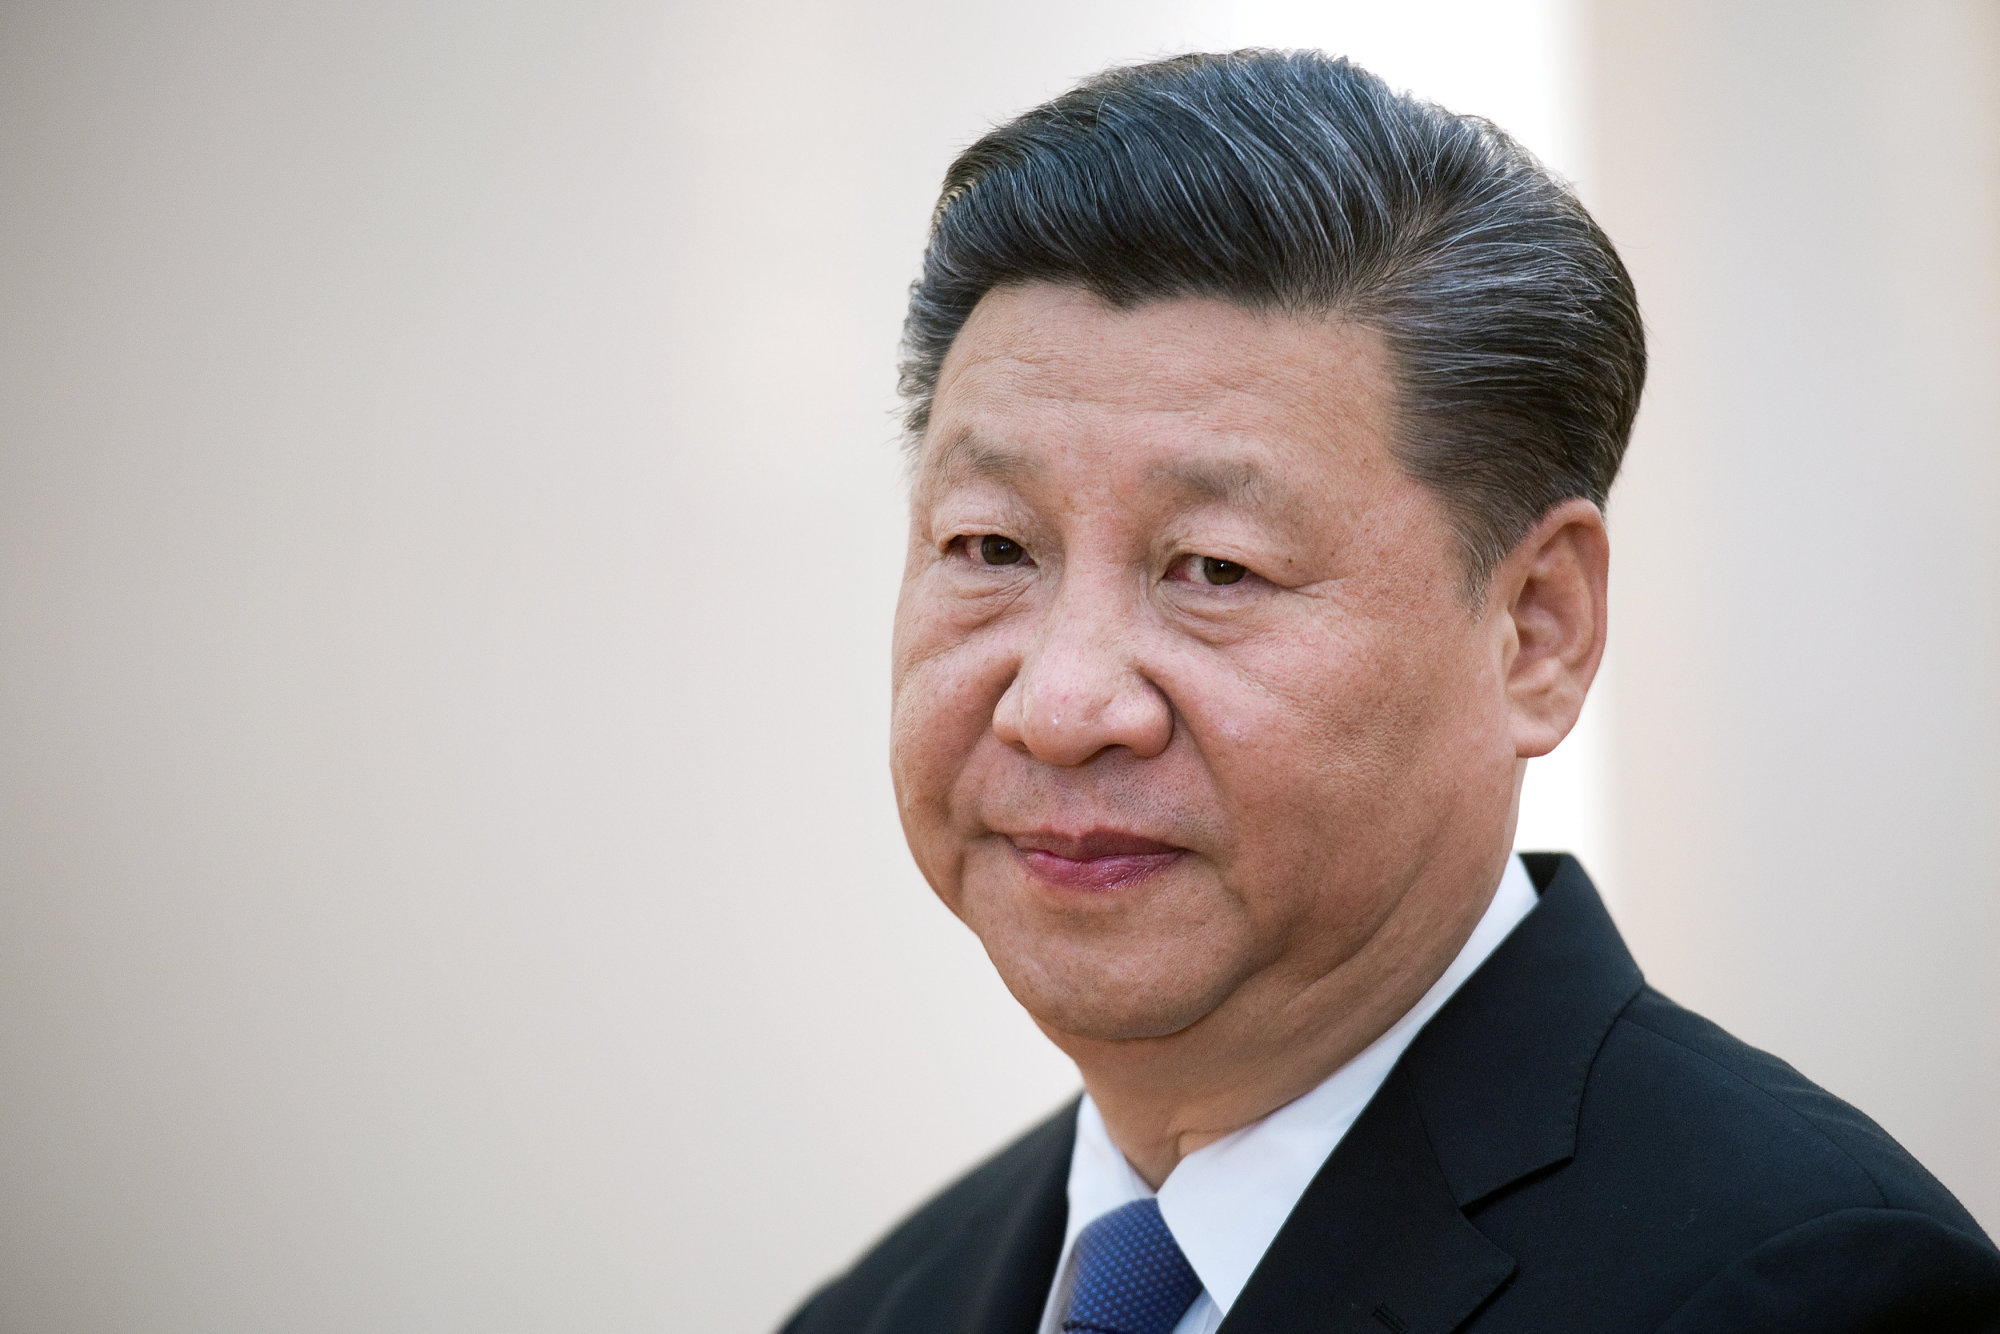 China's President Xi Jinping and removing presidential term limits - Newslibre